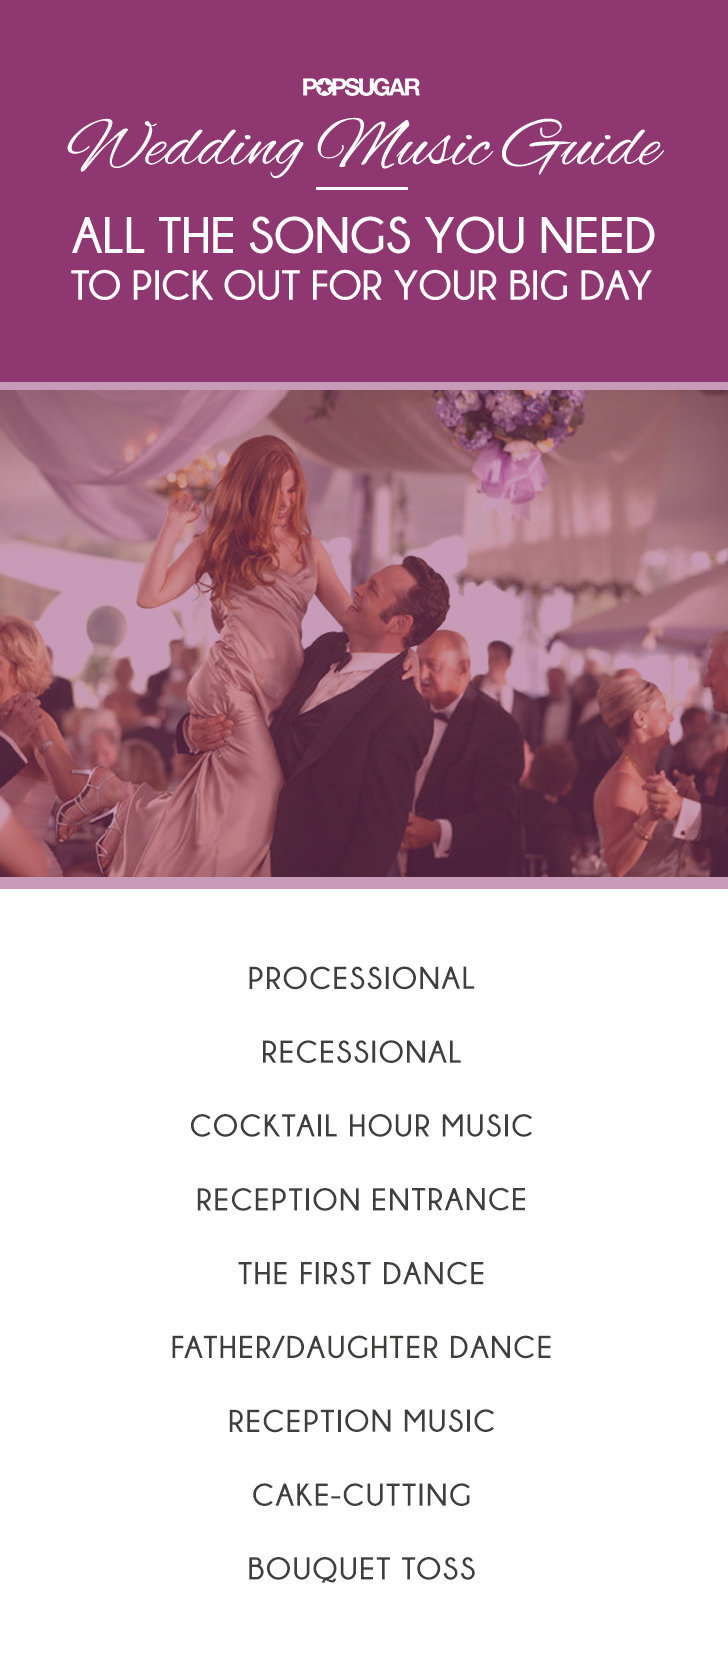 Mutable Wedding Music Guide Popsugar Middle East Celebrity Entertainment Wedding Processional Songs 2018 Wedding Processional Songs Piano wedding Wedding Processional Songs